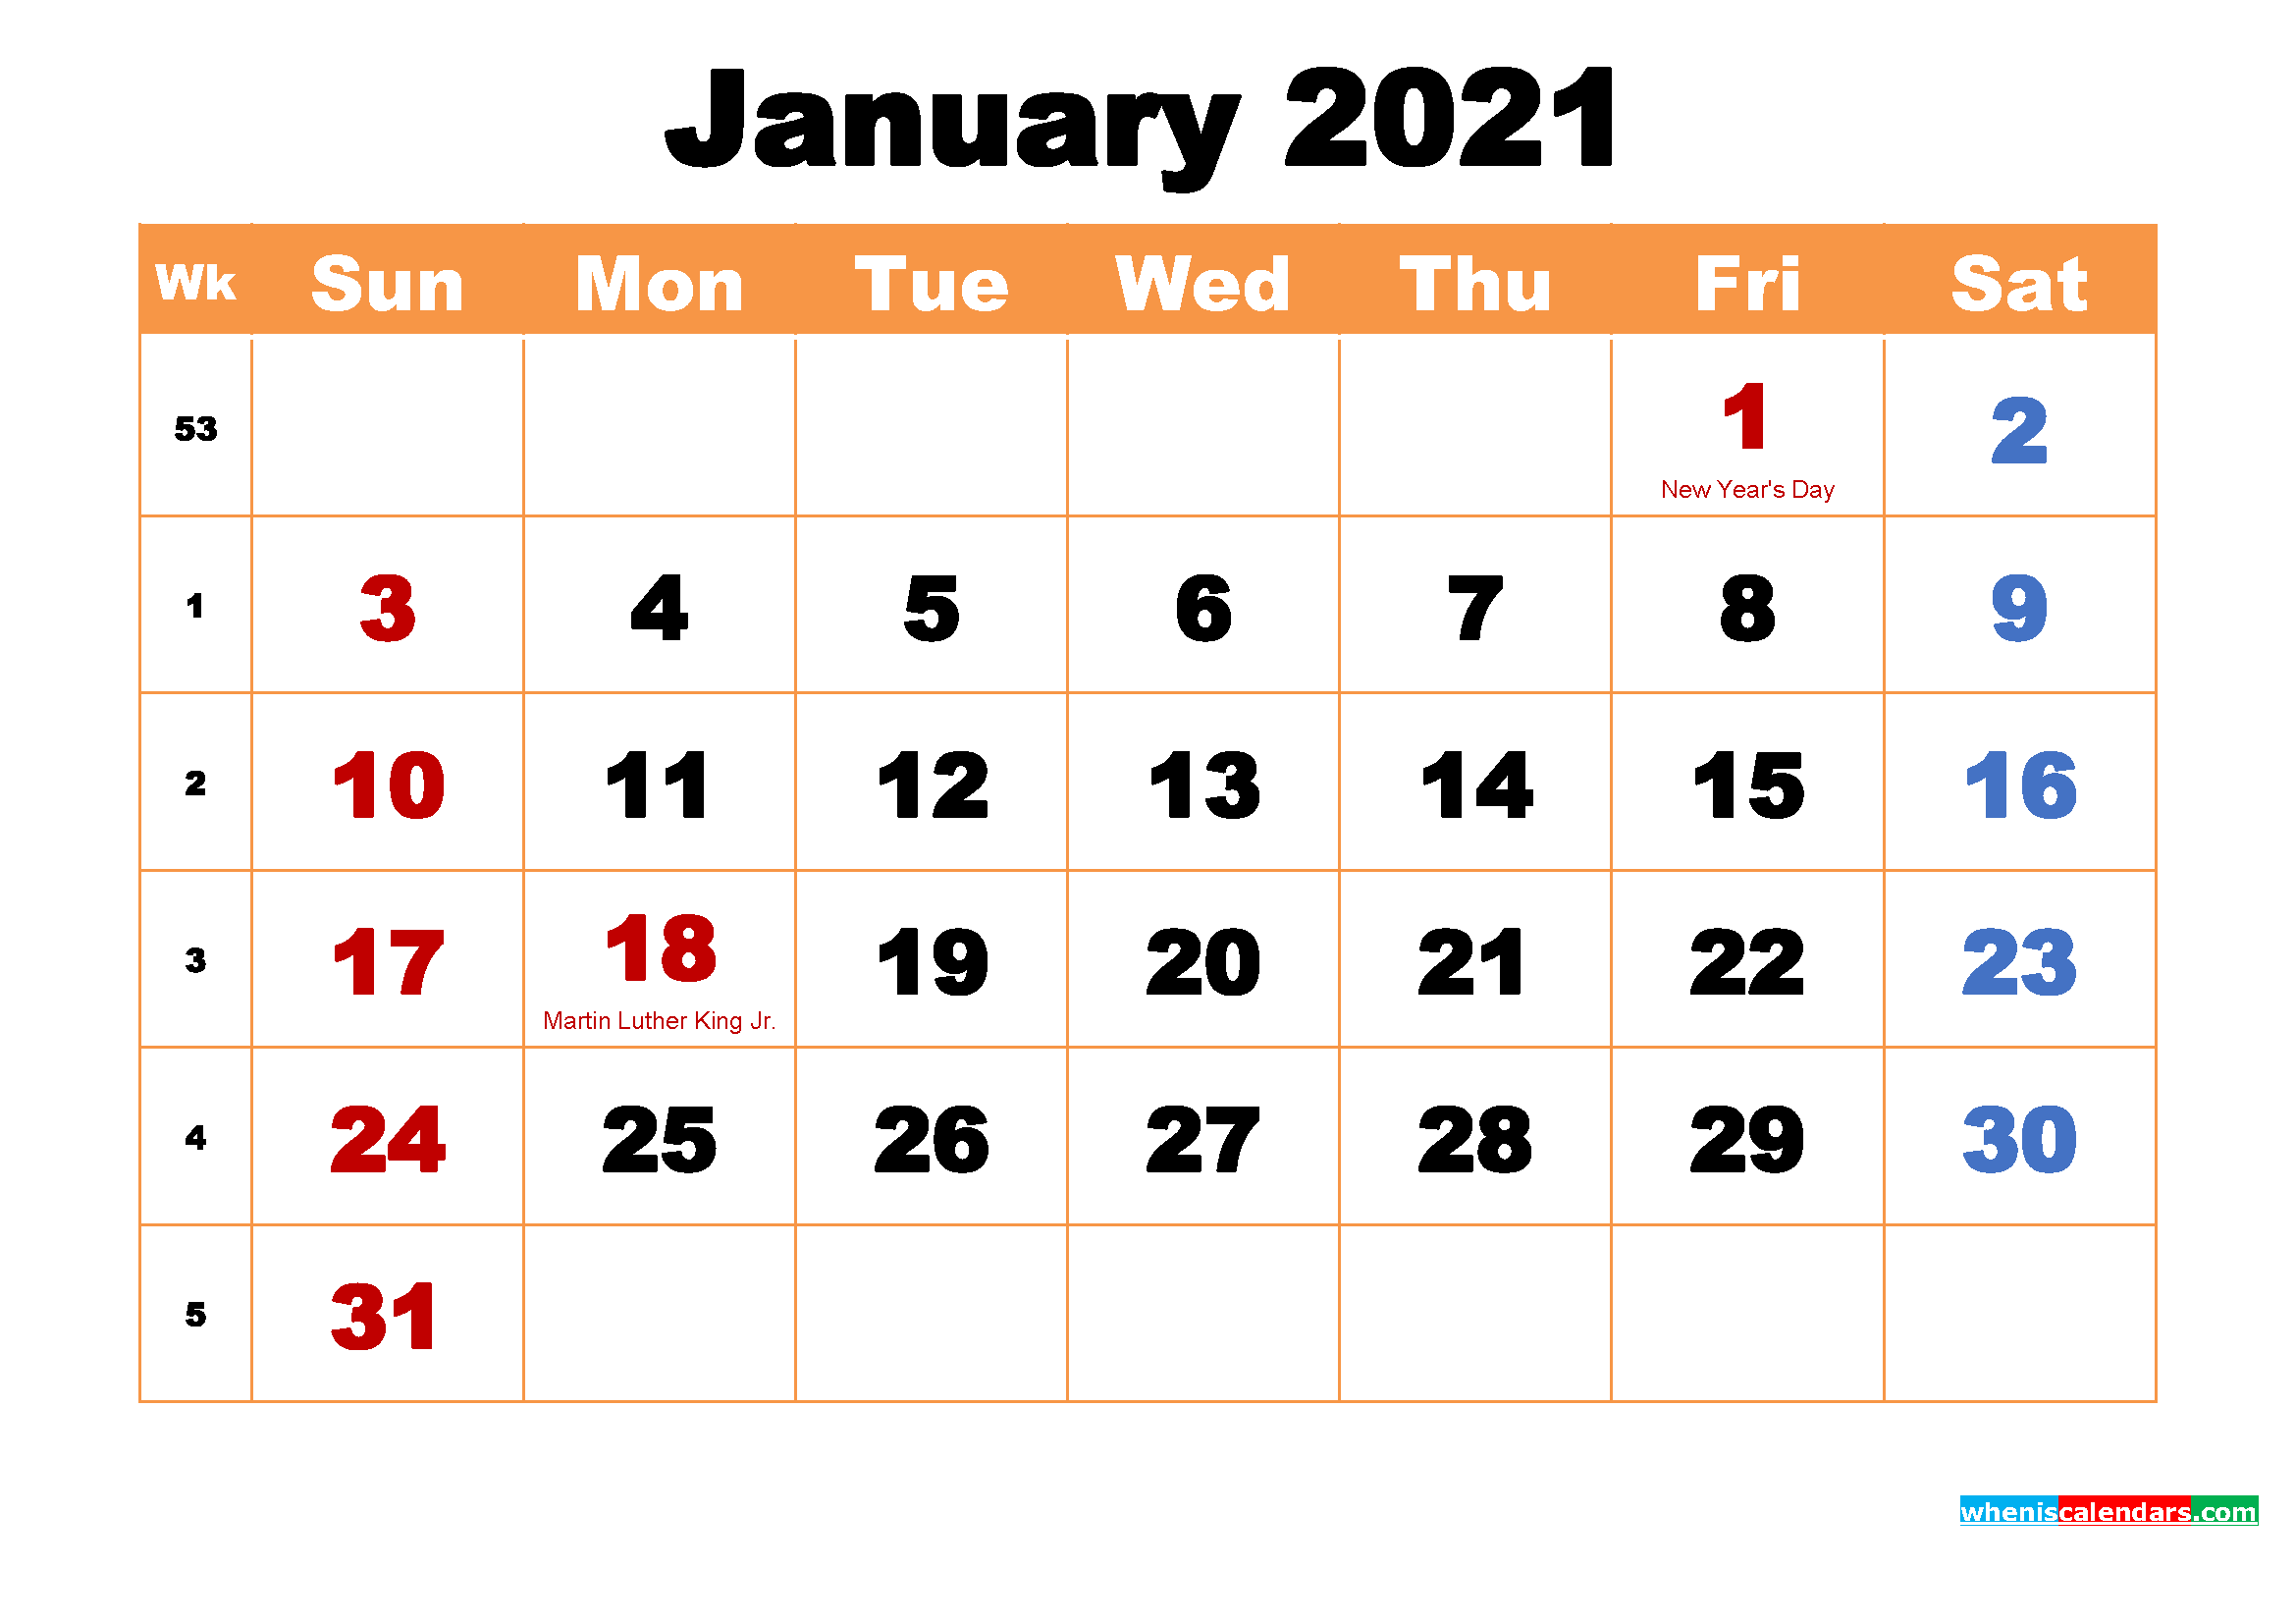 January 2021 Calendar Wallpaper High Resolution